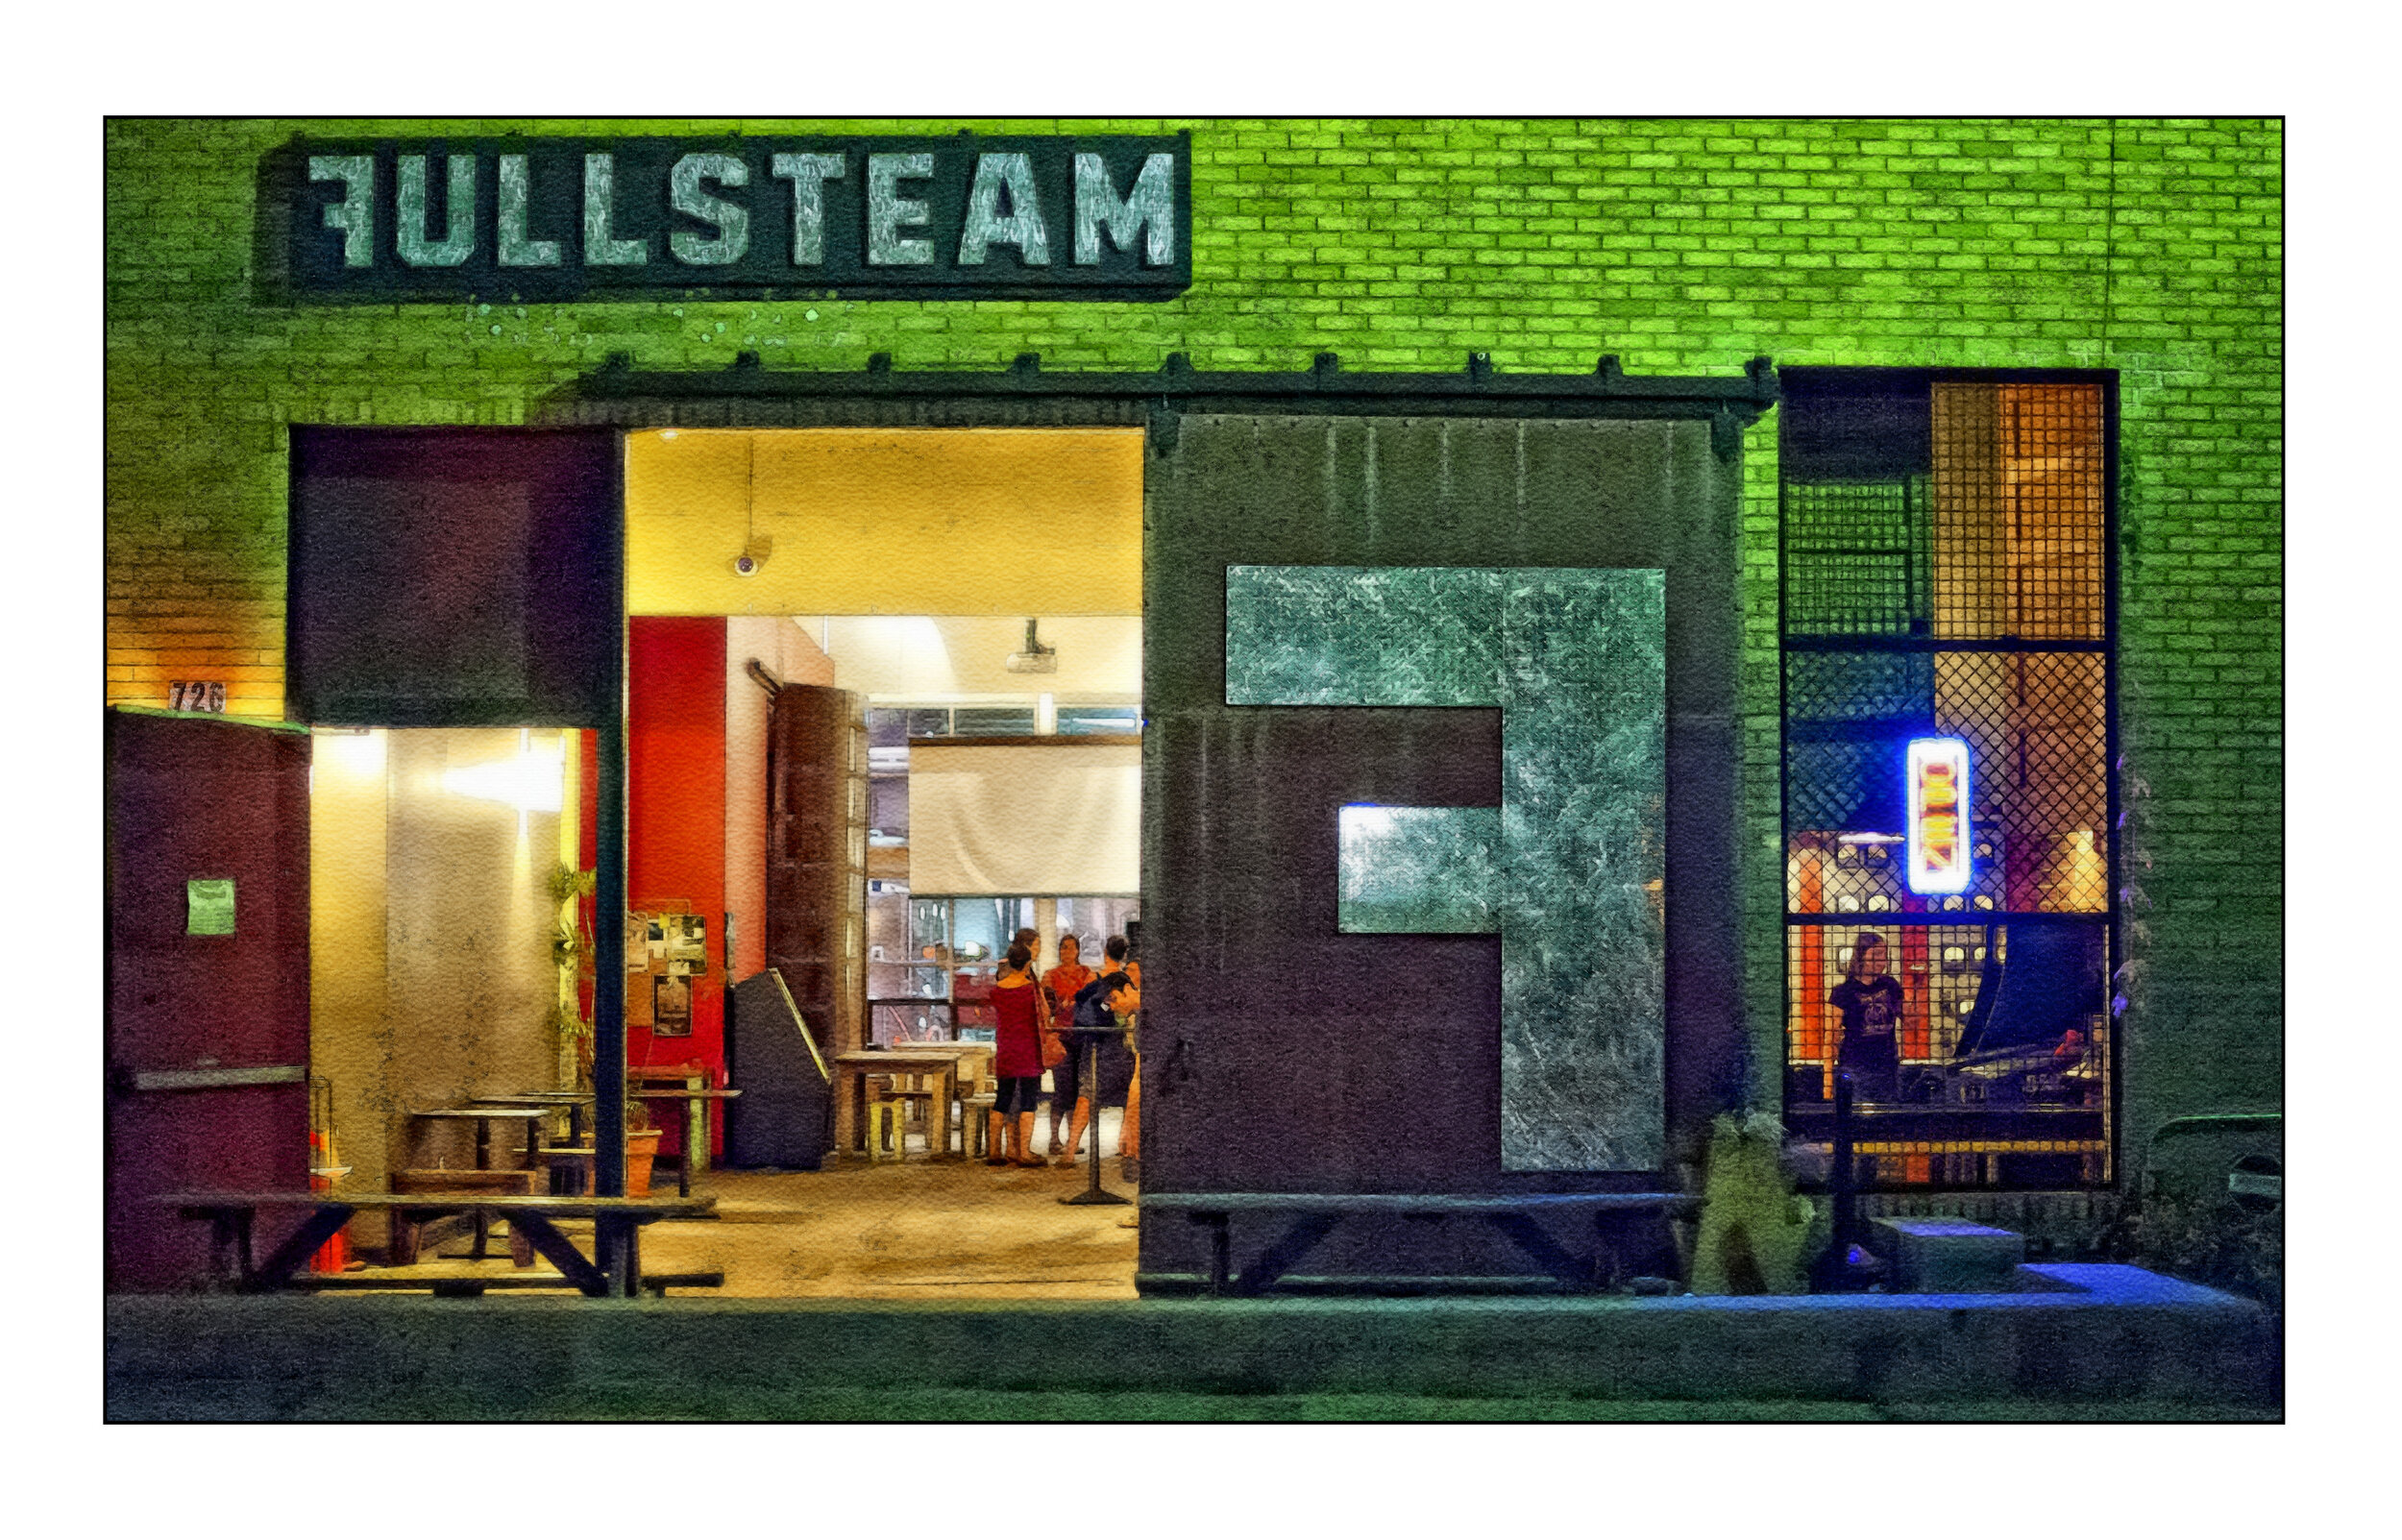 Durham_Fullsteam_FrontWatercolor_7102012.jpg